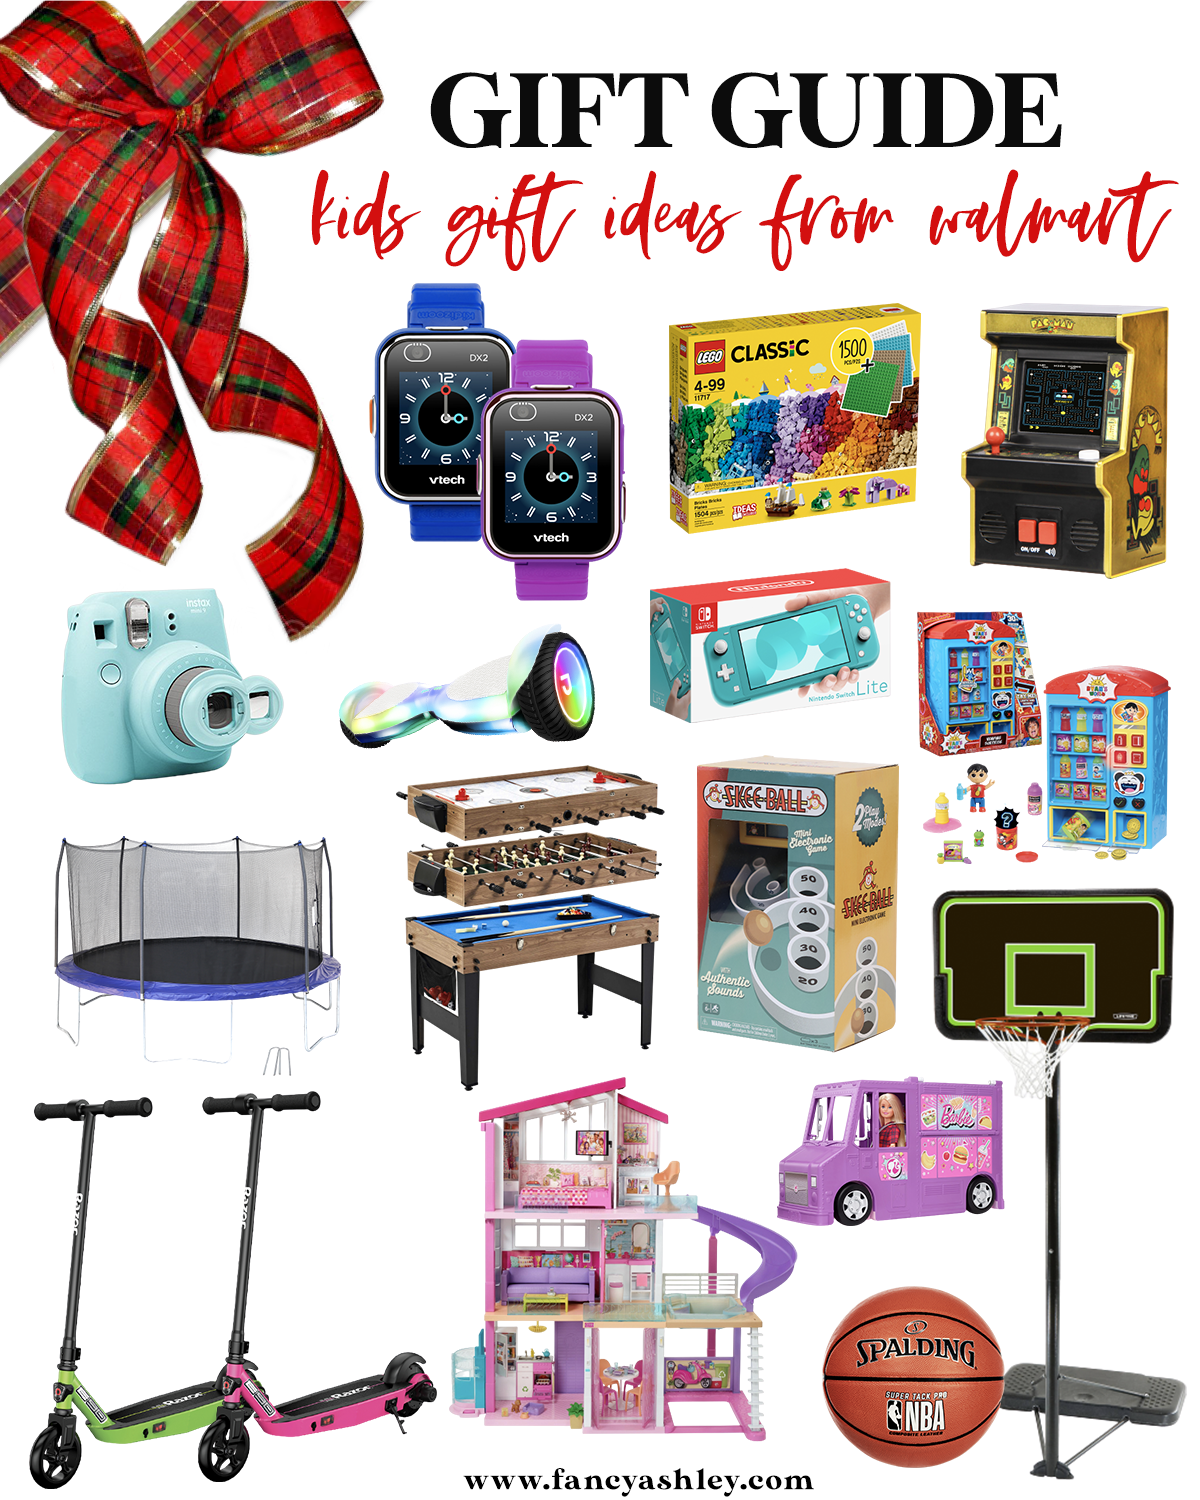 Walmart Gift Ideas by popular Houston life and style blog, Fancy Ashley: collage image of a vtech watches, game table, trampoline, razor scooter, instax camera, basketball and basketball hoop, mini arcade game, legos, nintento, skee ball, Barbie house, Barbie food truck, and a hover board.